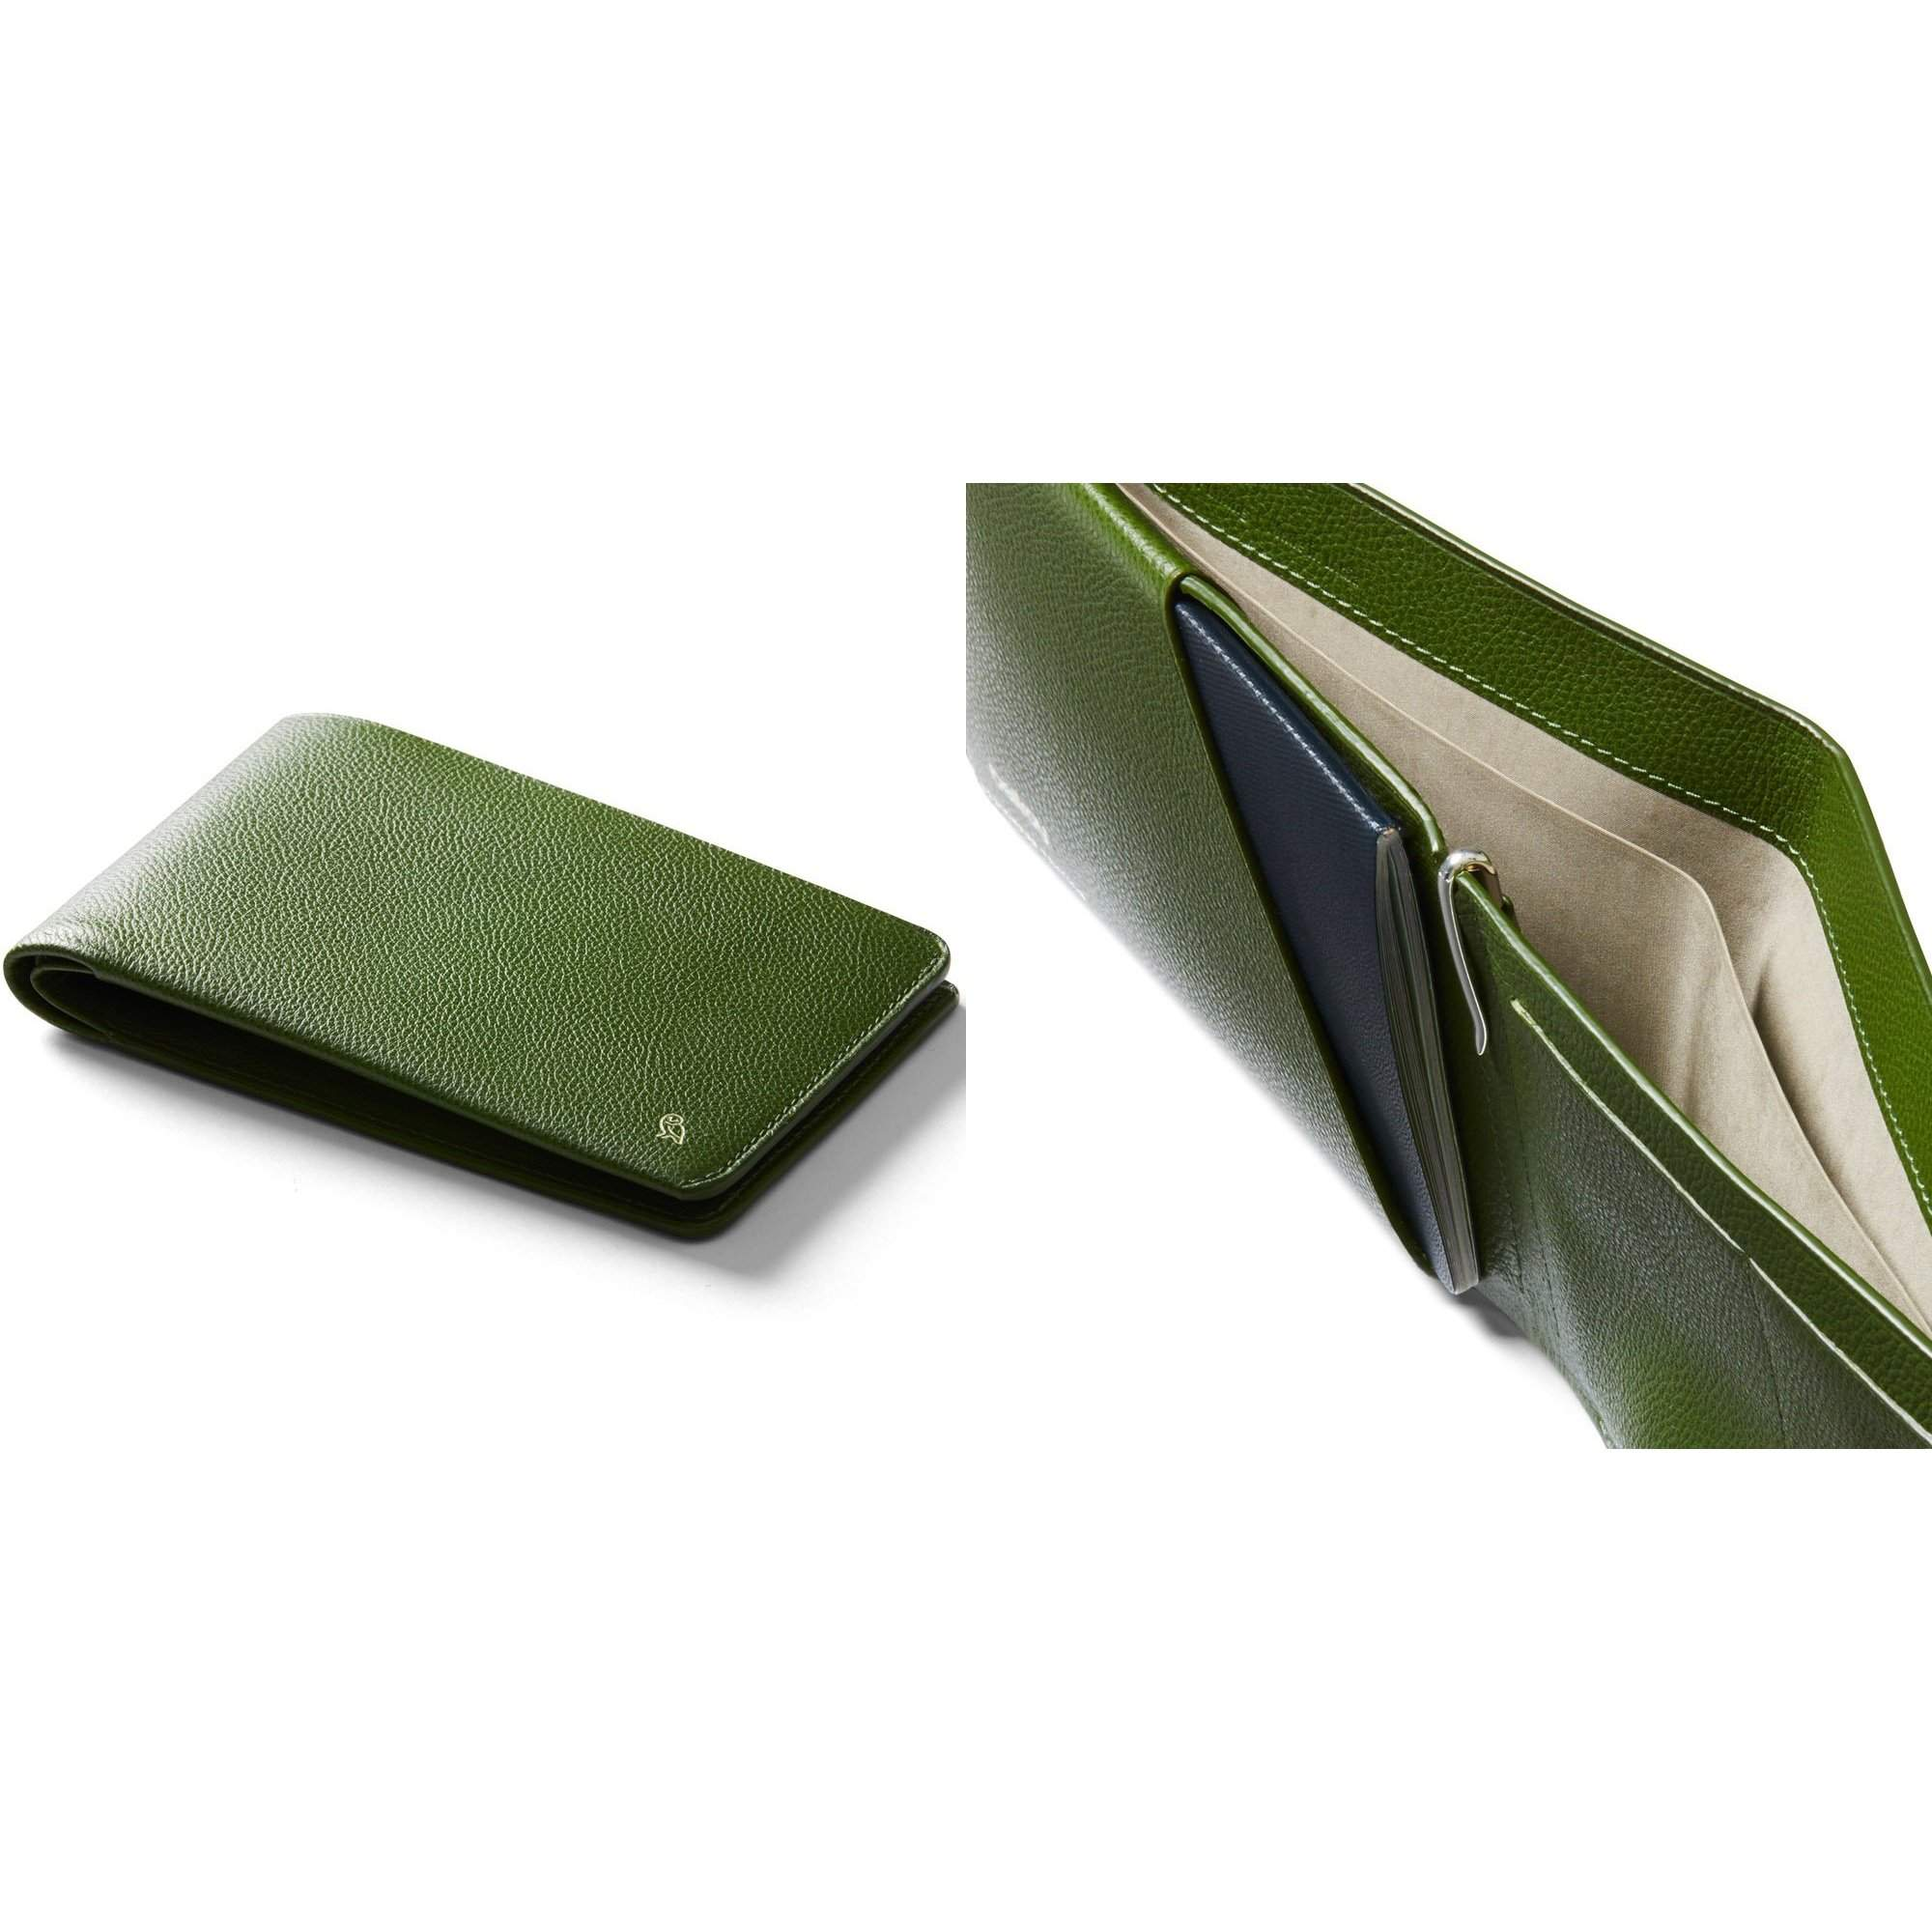 d4318665c5 Bellroy Designer's Edition Leather Travel Wallet